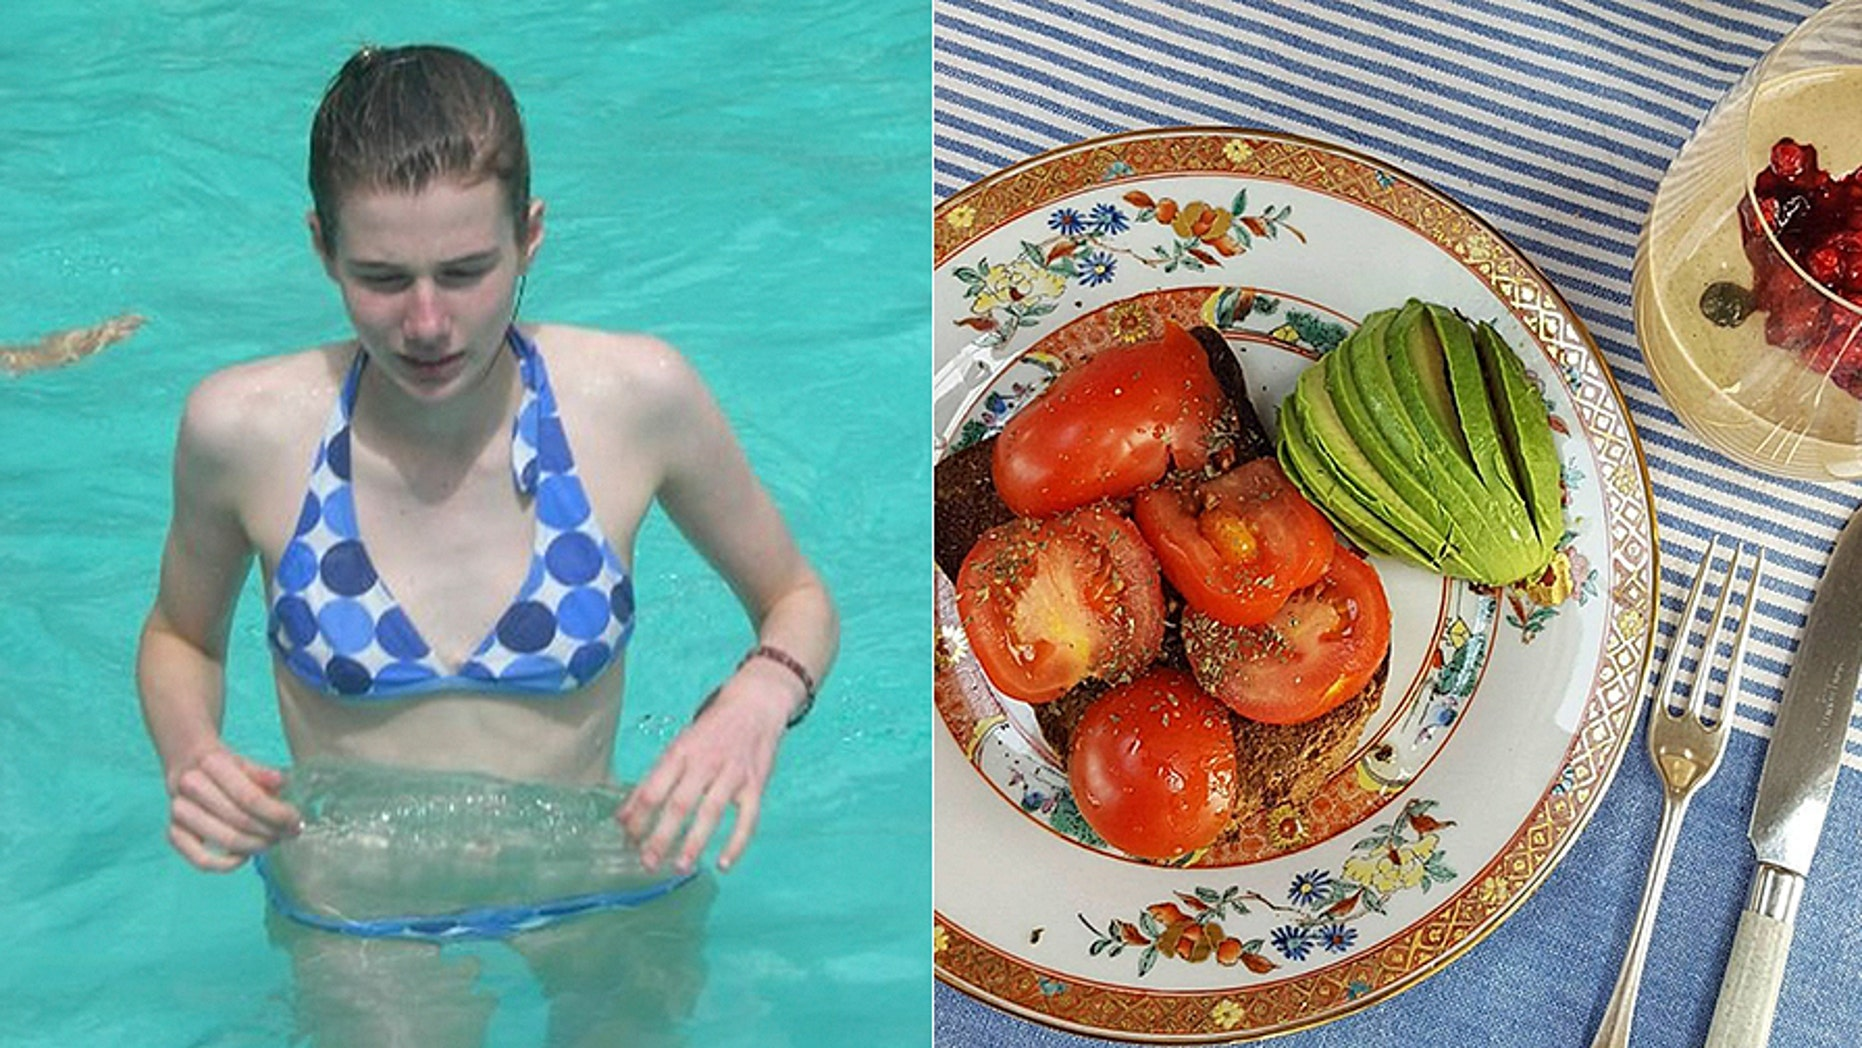 A 26-year old was so obsessed with healthy food that she ended up becoming malnourished.